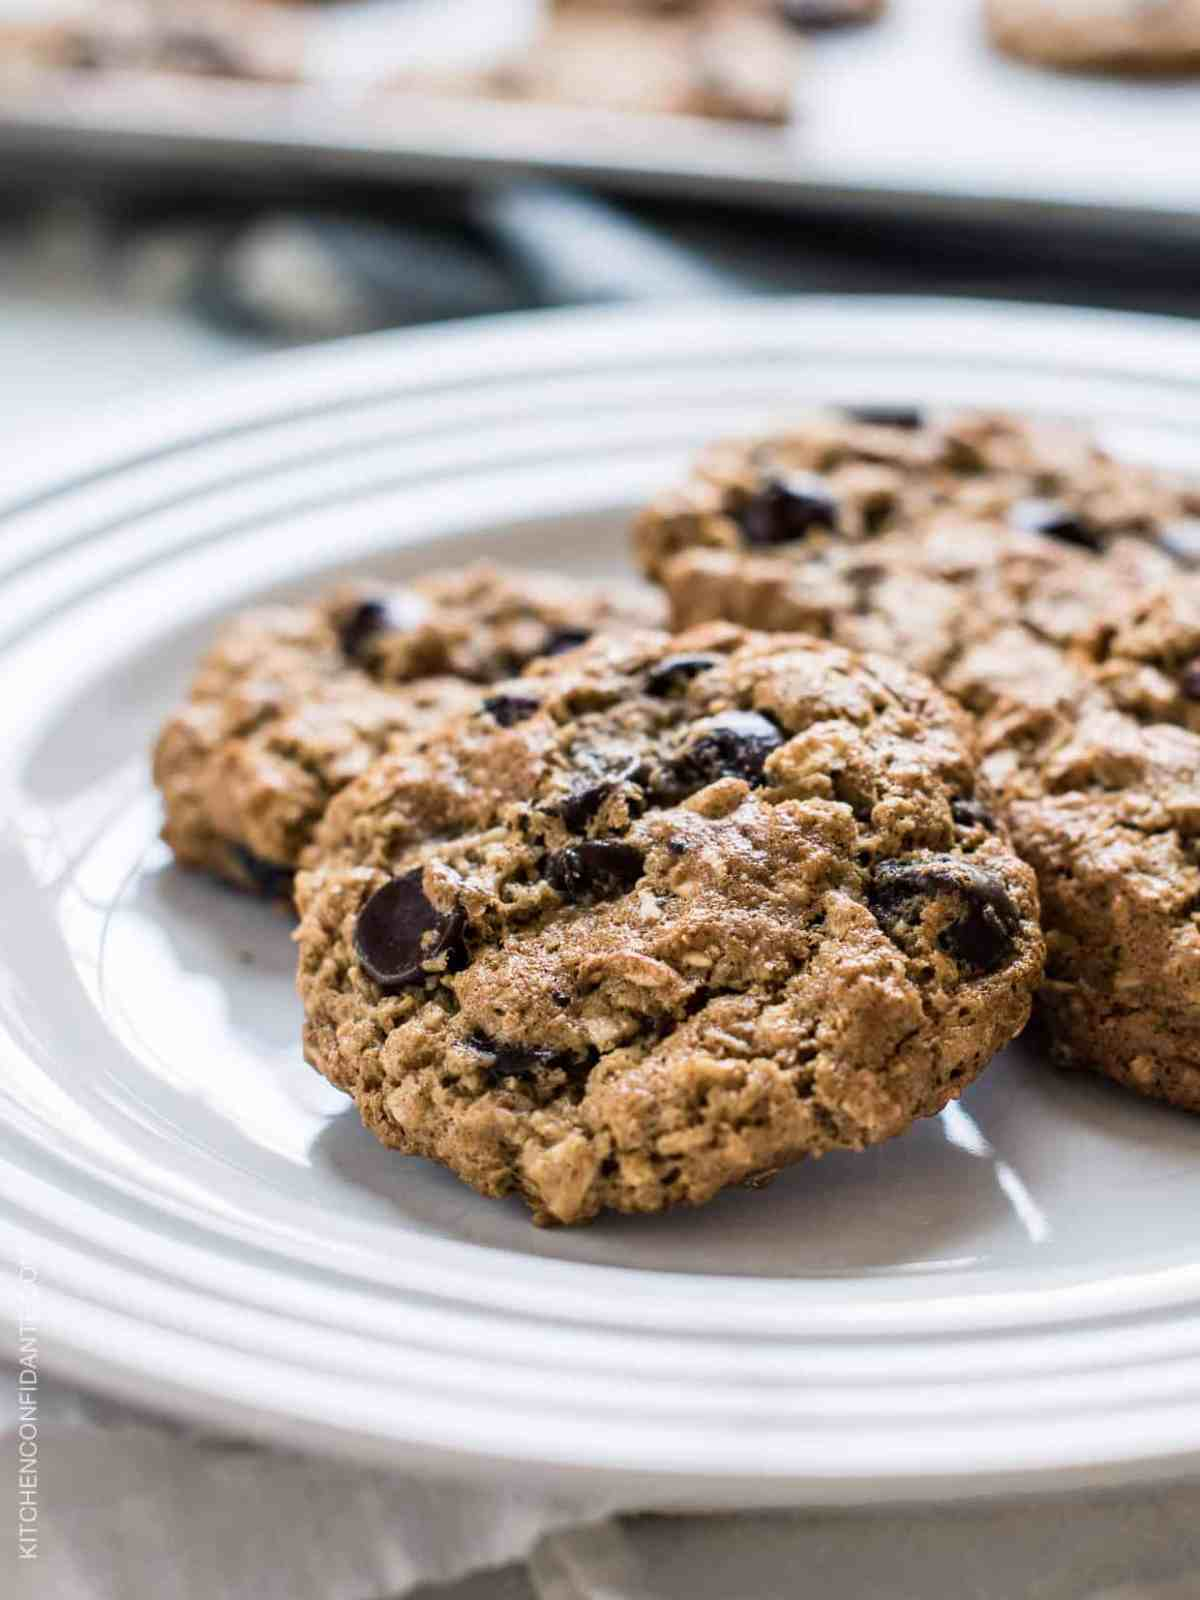 Almond Butter Oatmeal Cookies on a plate.